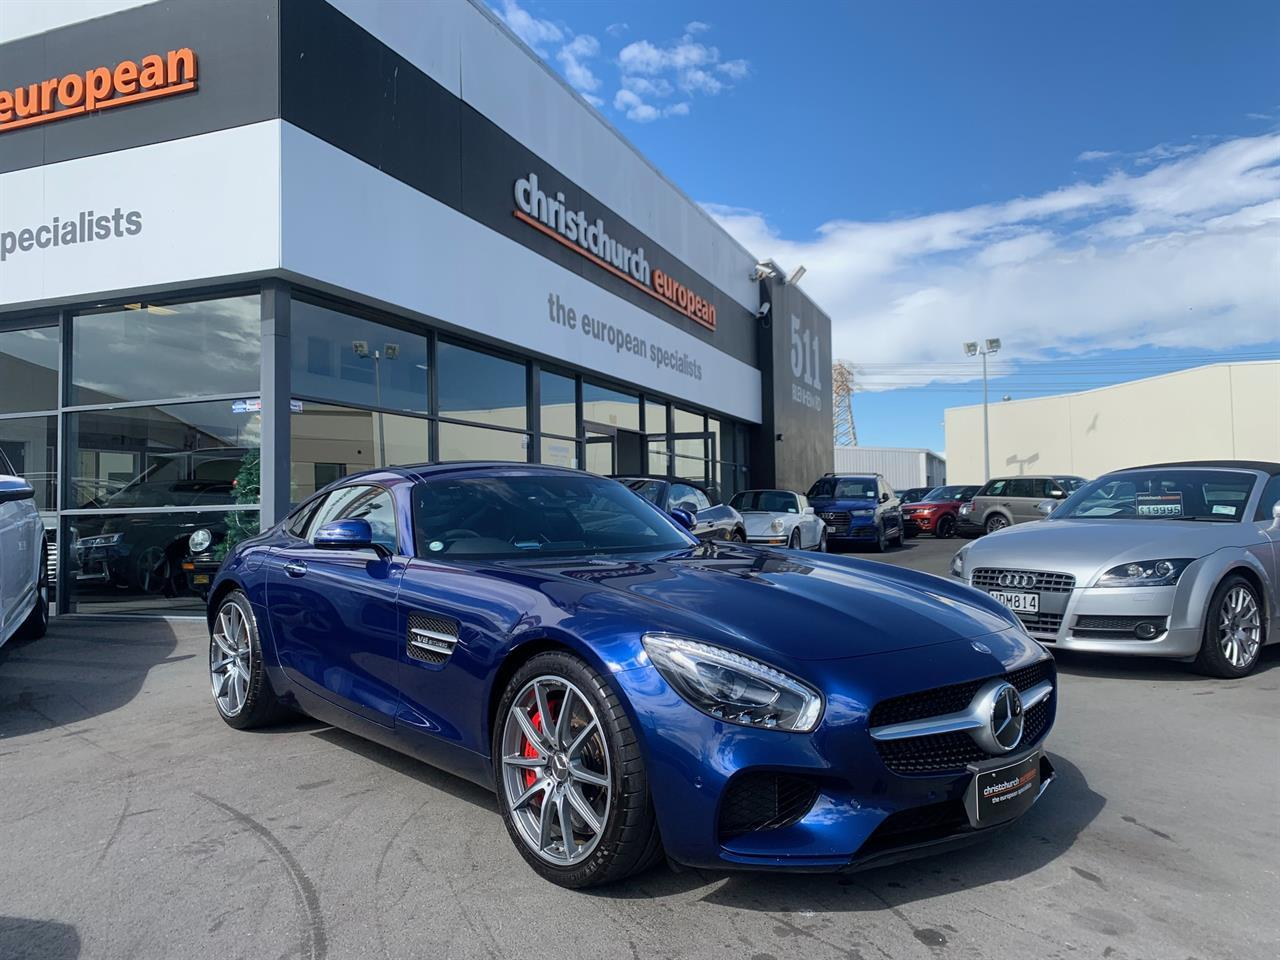 image-0, 2017 MercedesBenz AMG GT-S 4.0 V8 Coupe at Christchurch